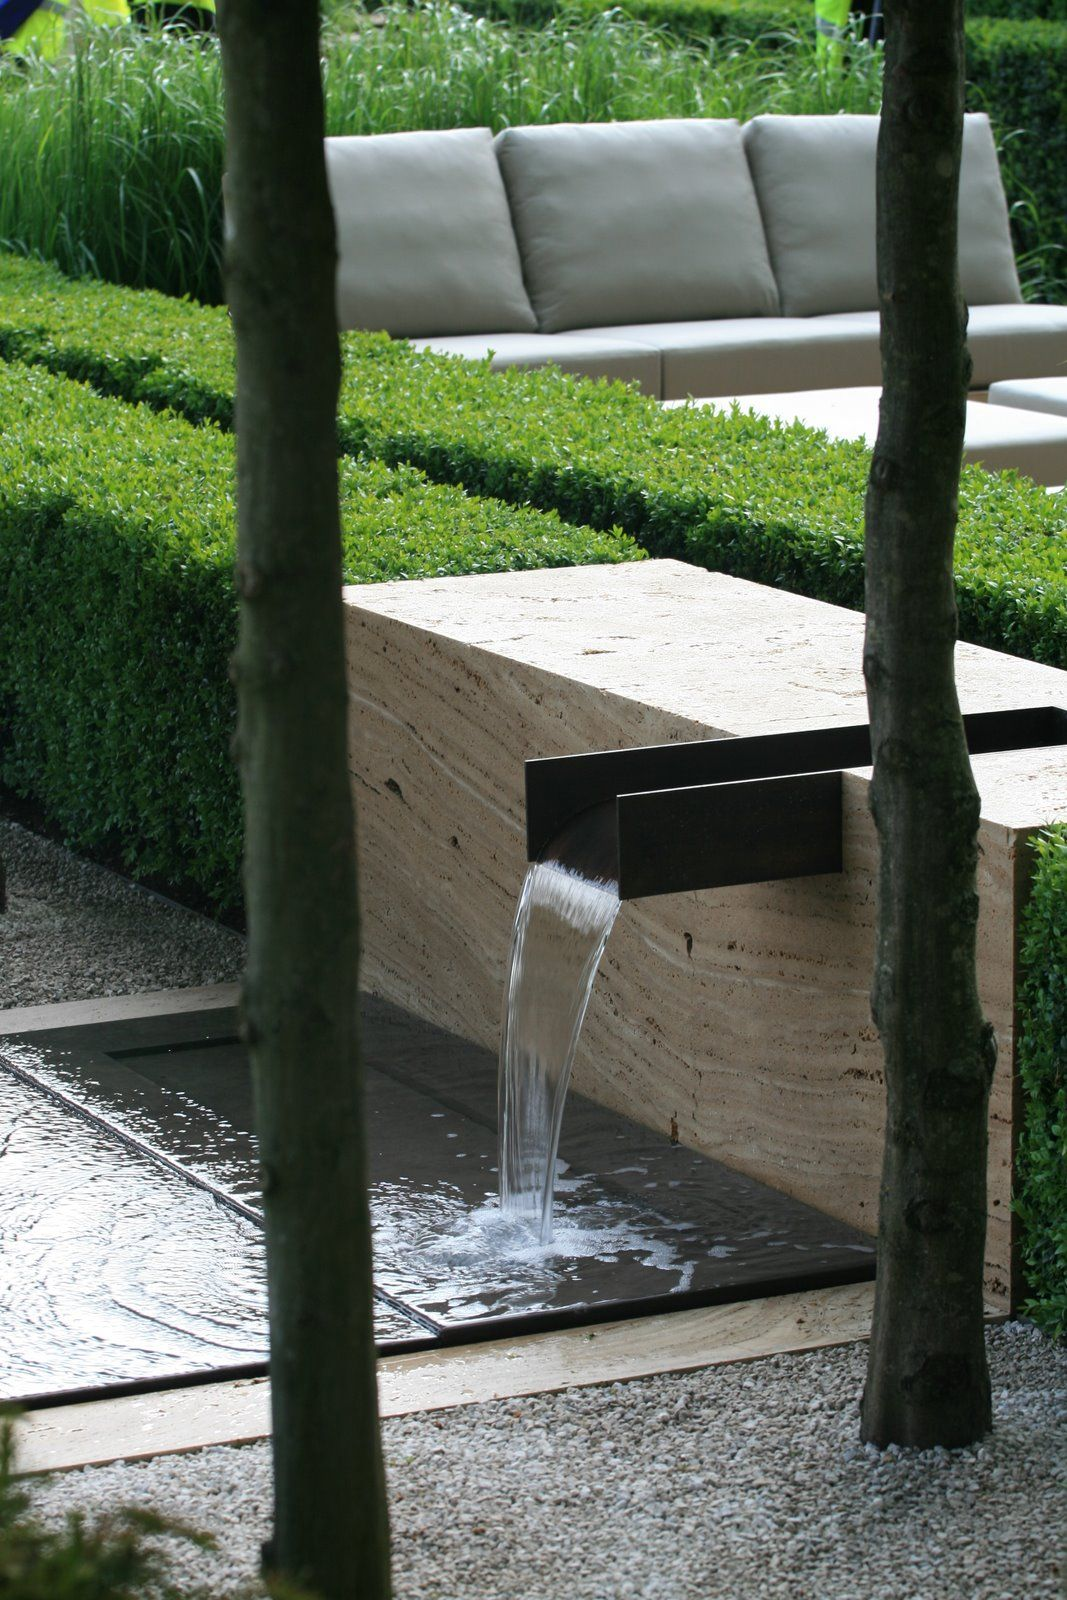 Landscape Design Ideas: Modern Garden Water Features | Outdoor ...